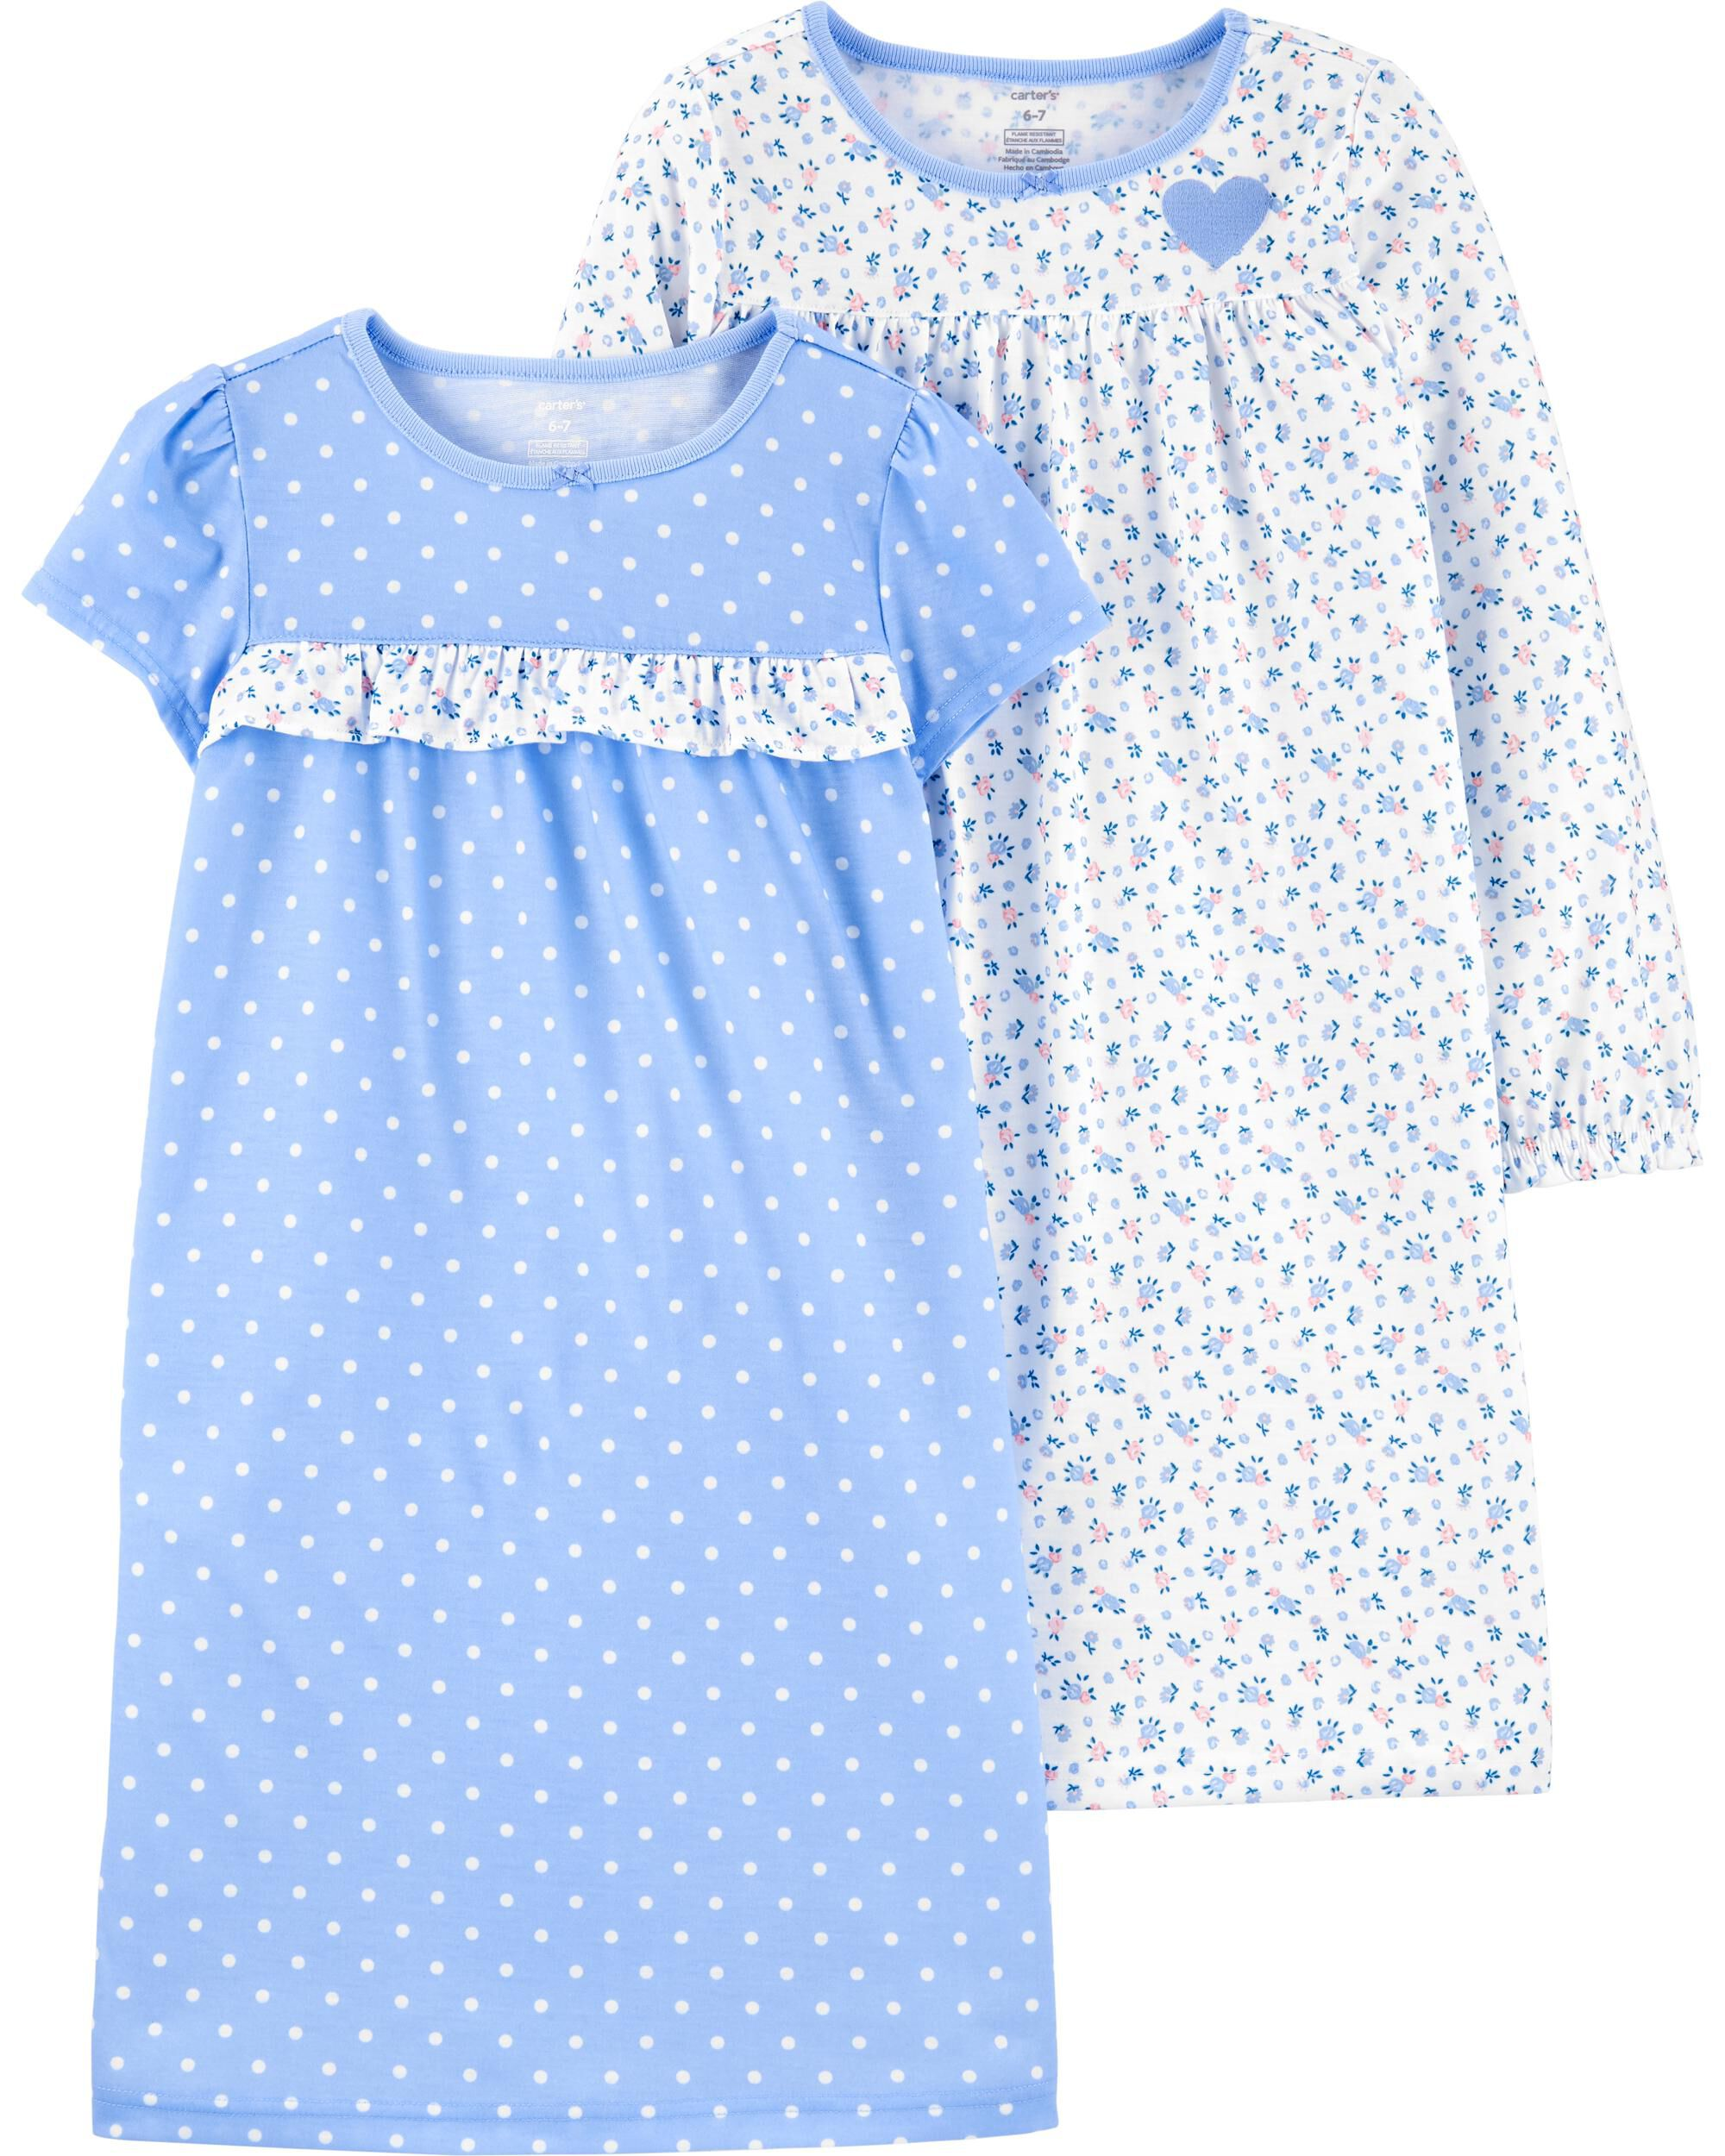 2-Pack Floral Nightgowns